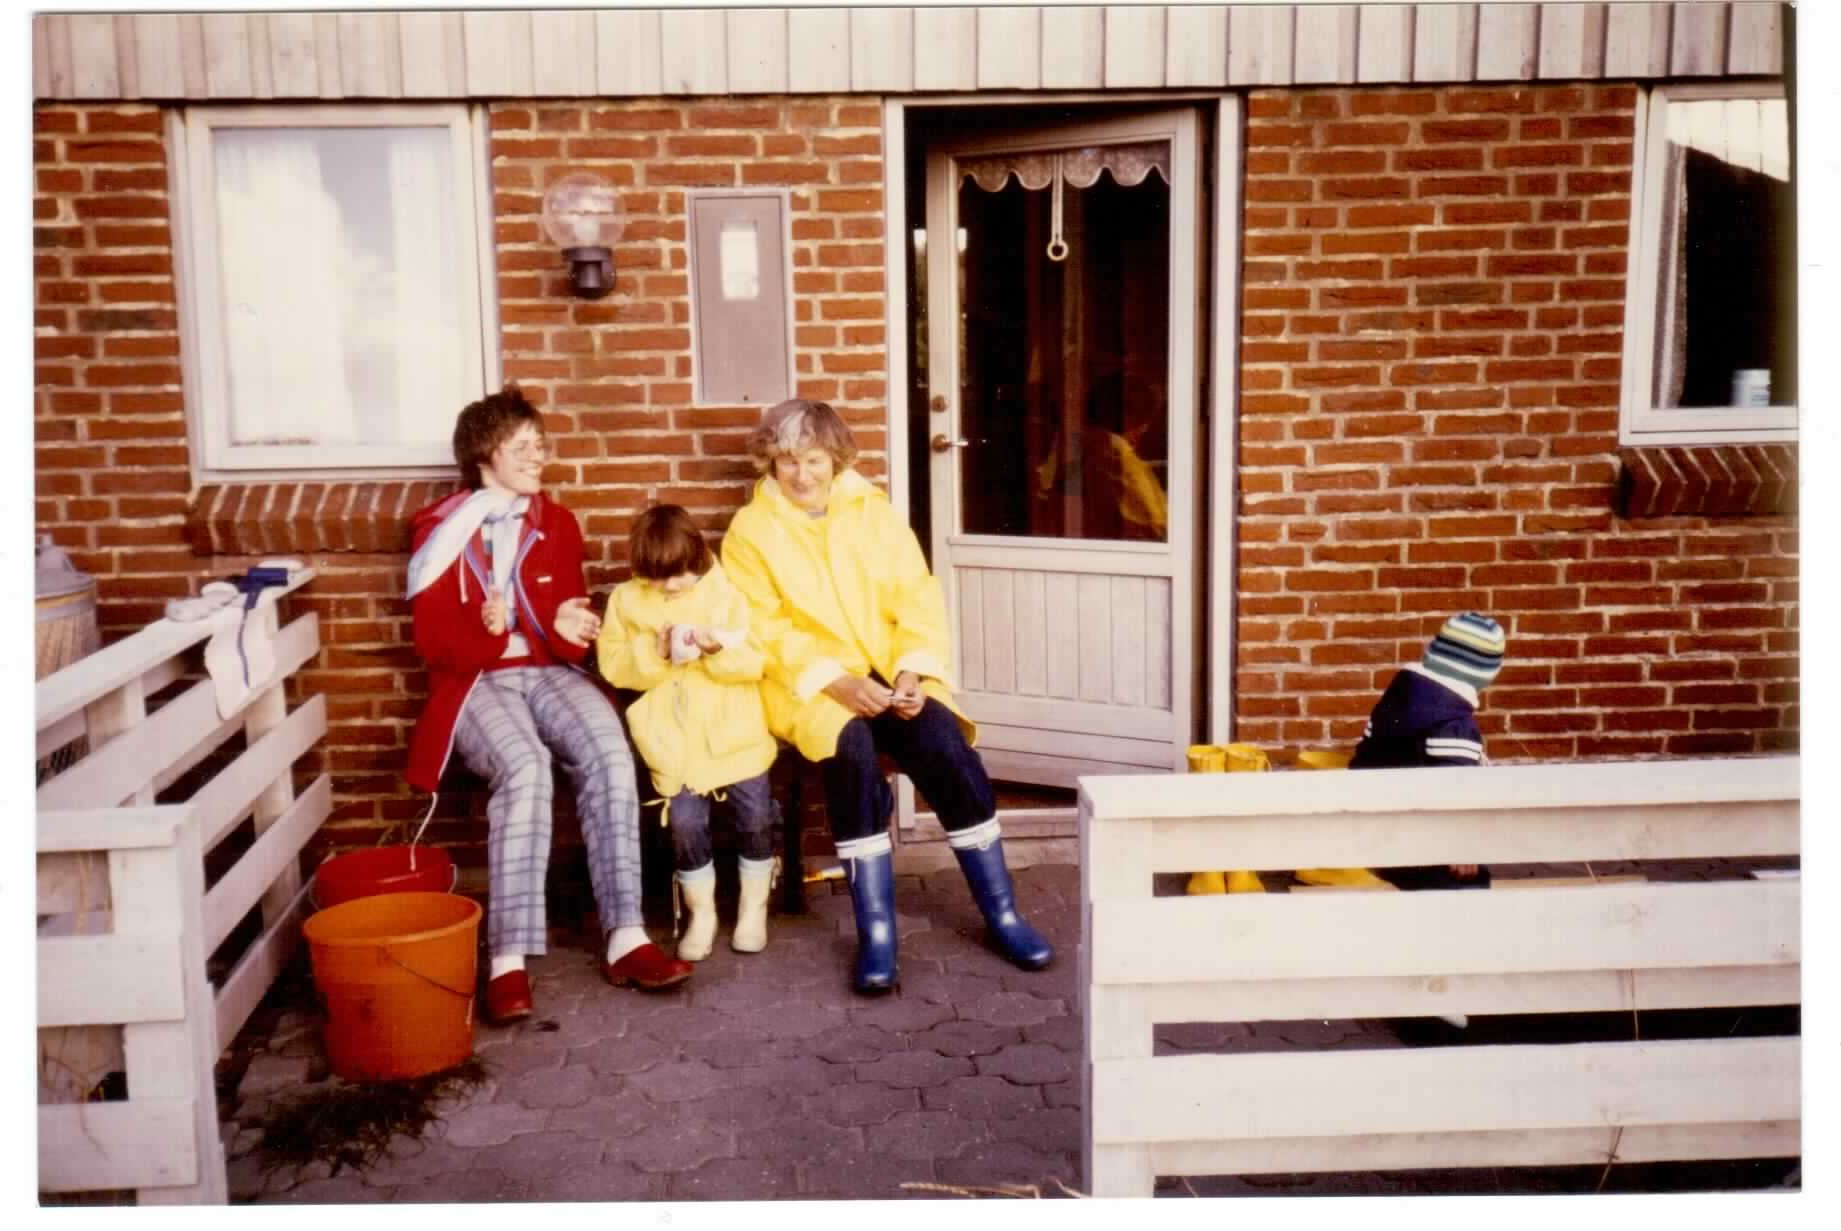 Mum, Grandma and I in front of a holiday house in Denmark, in 1987 I think.